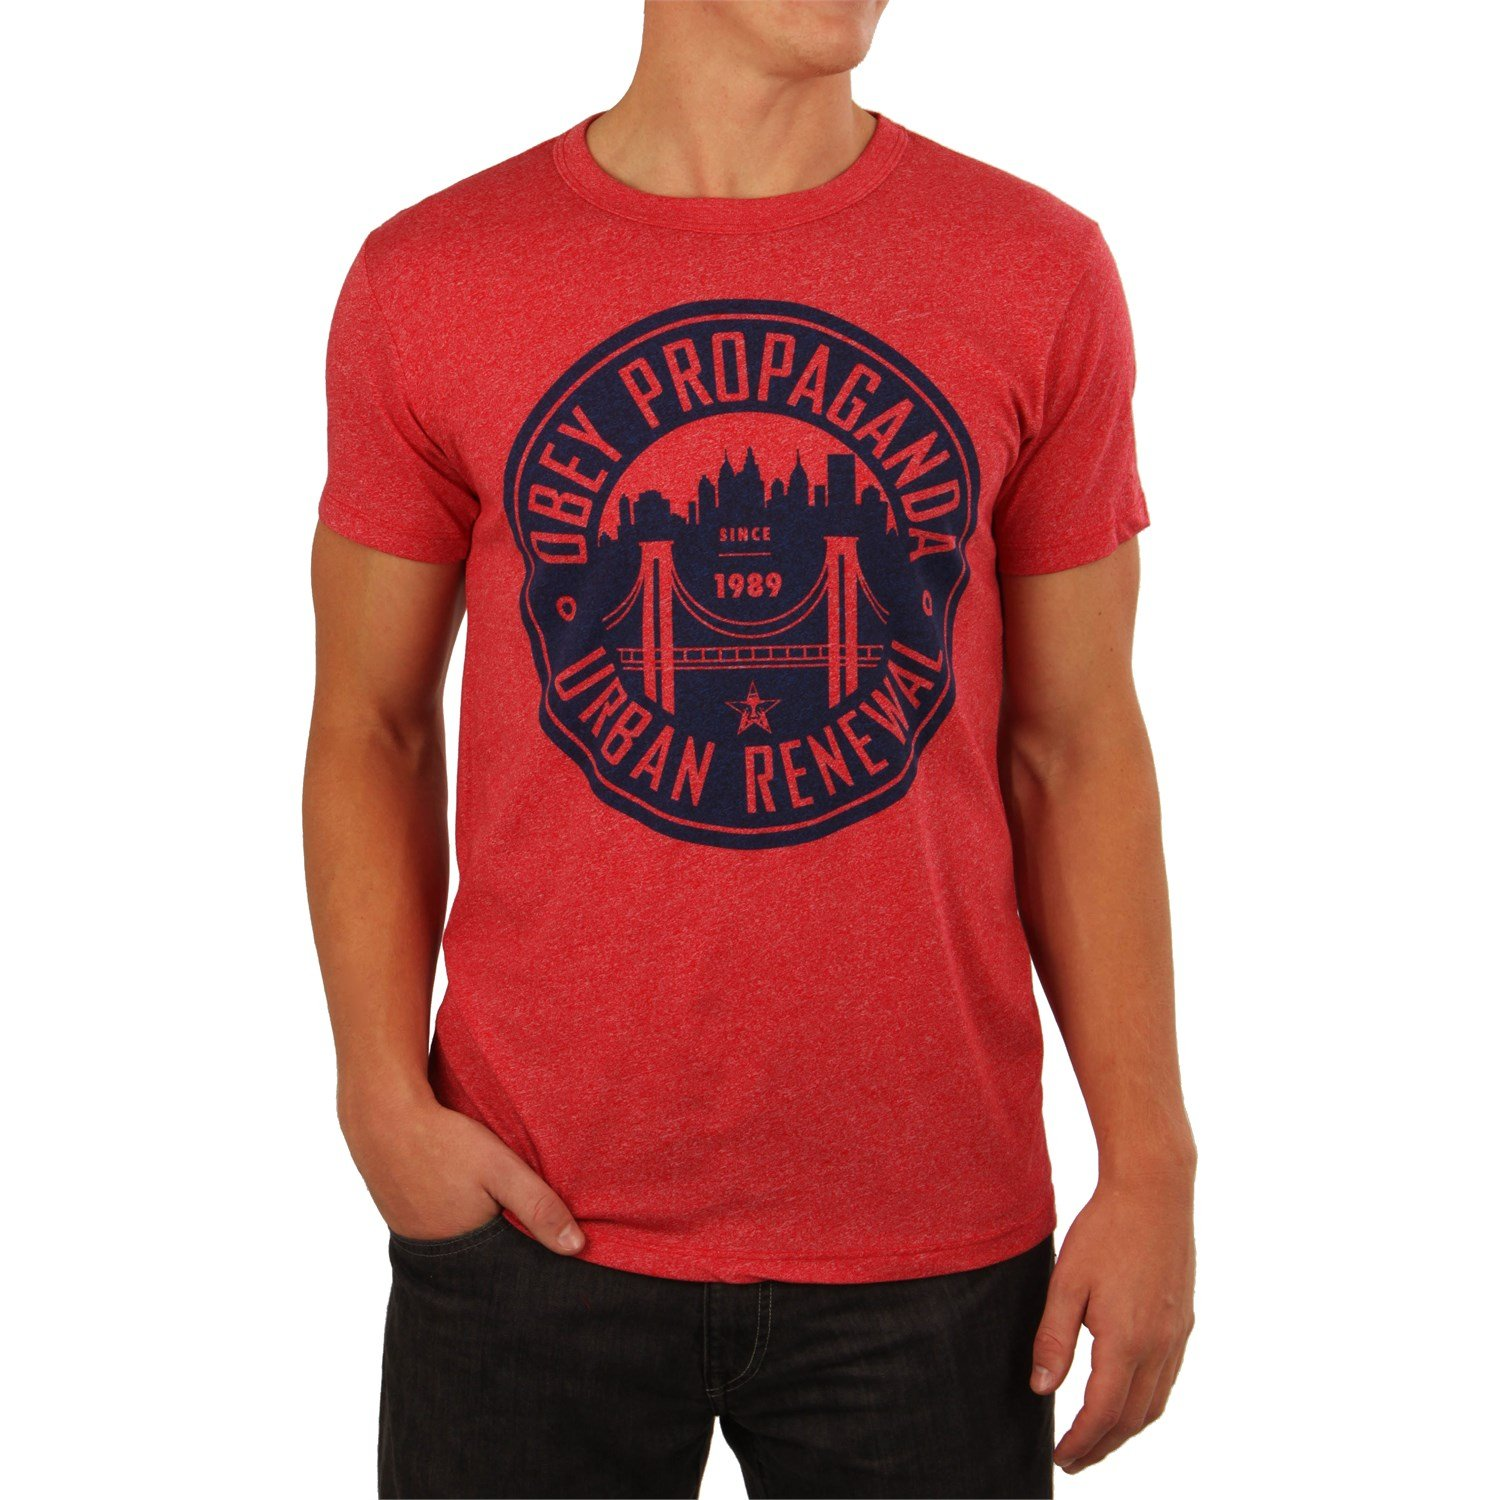 Obey Clothing Urban Renewal T Shirt | evo outlet